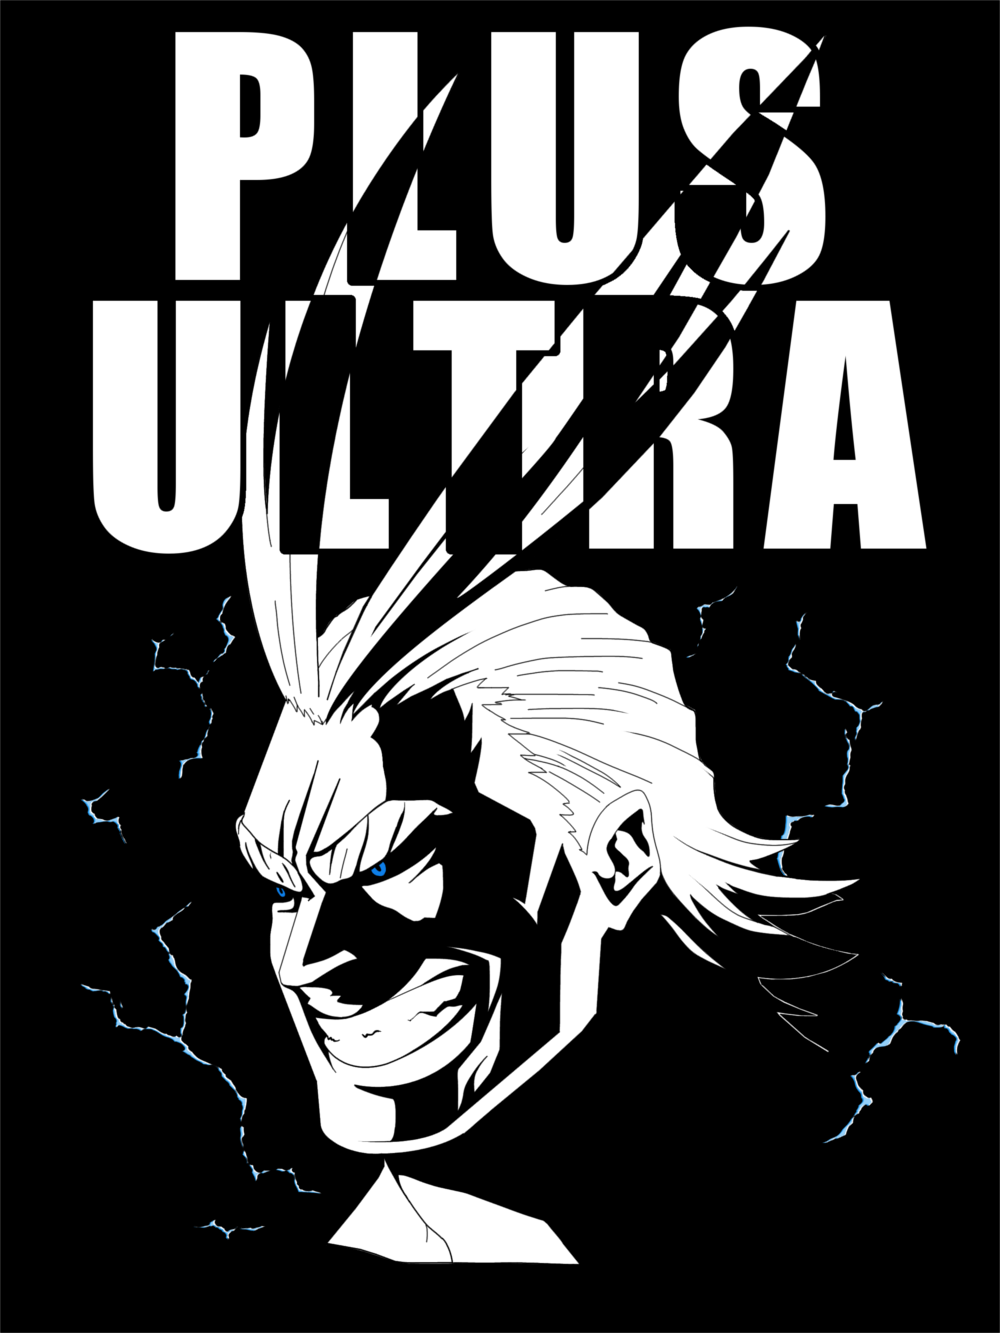 All Might: PLUS ULTRA! Poster — Steemit.